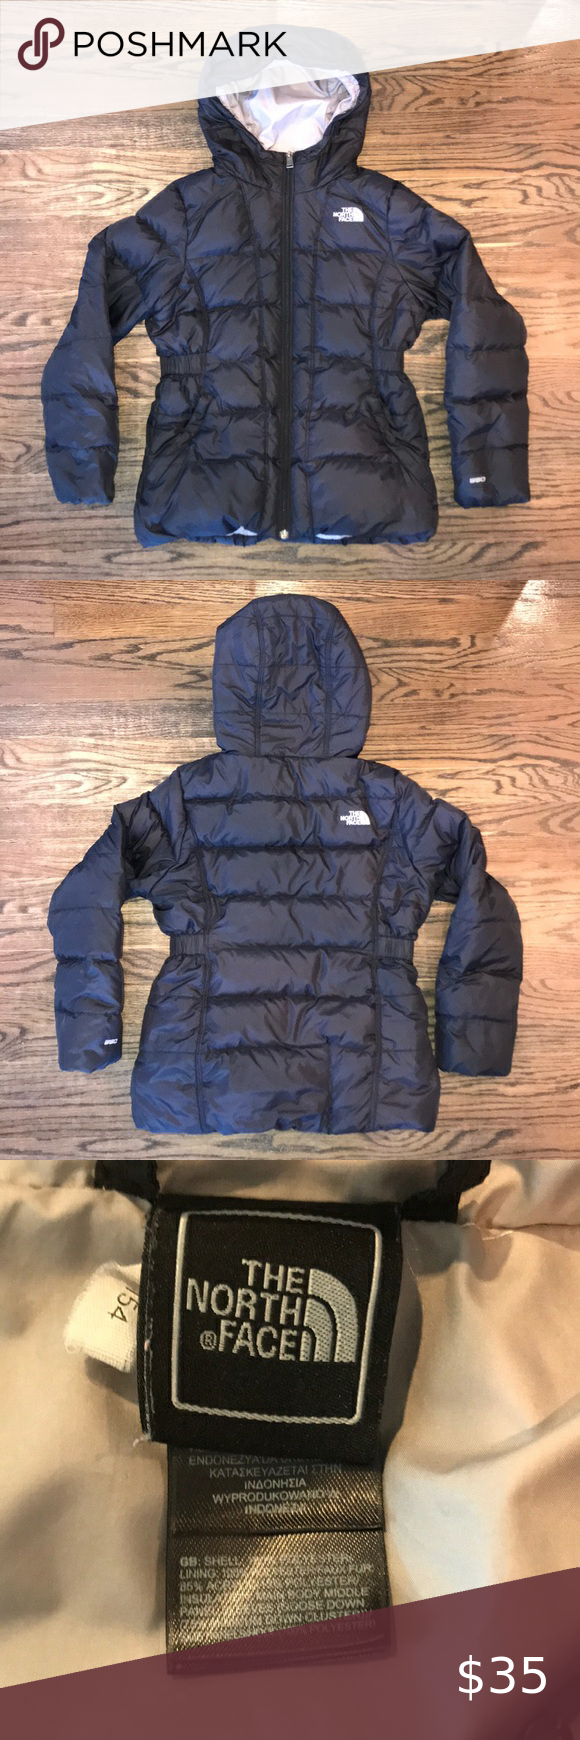 Girls The North Face Jacket In 2020 North Face Jacket Jackets Clothes Design [ 1740 x 580 Pixel ]